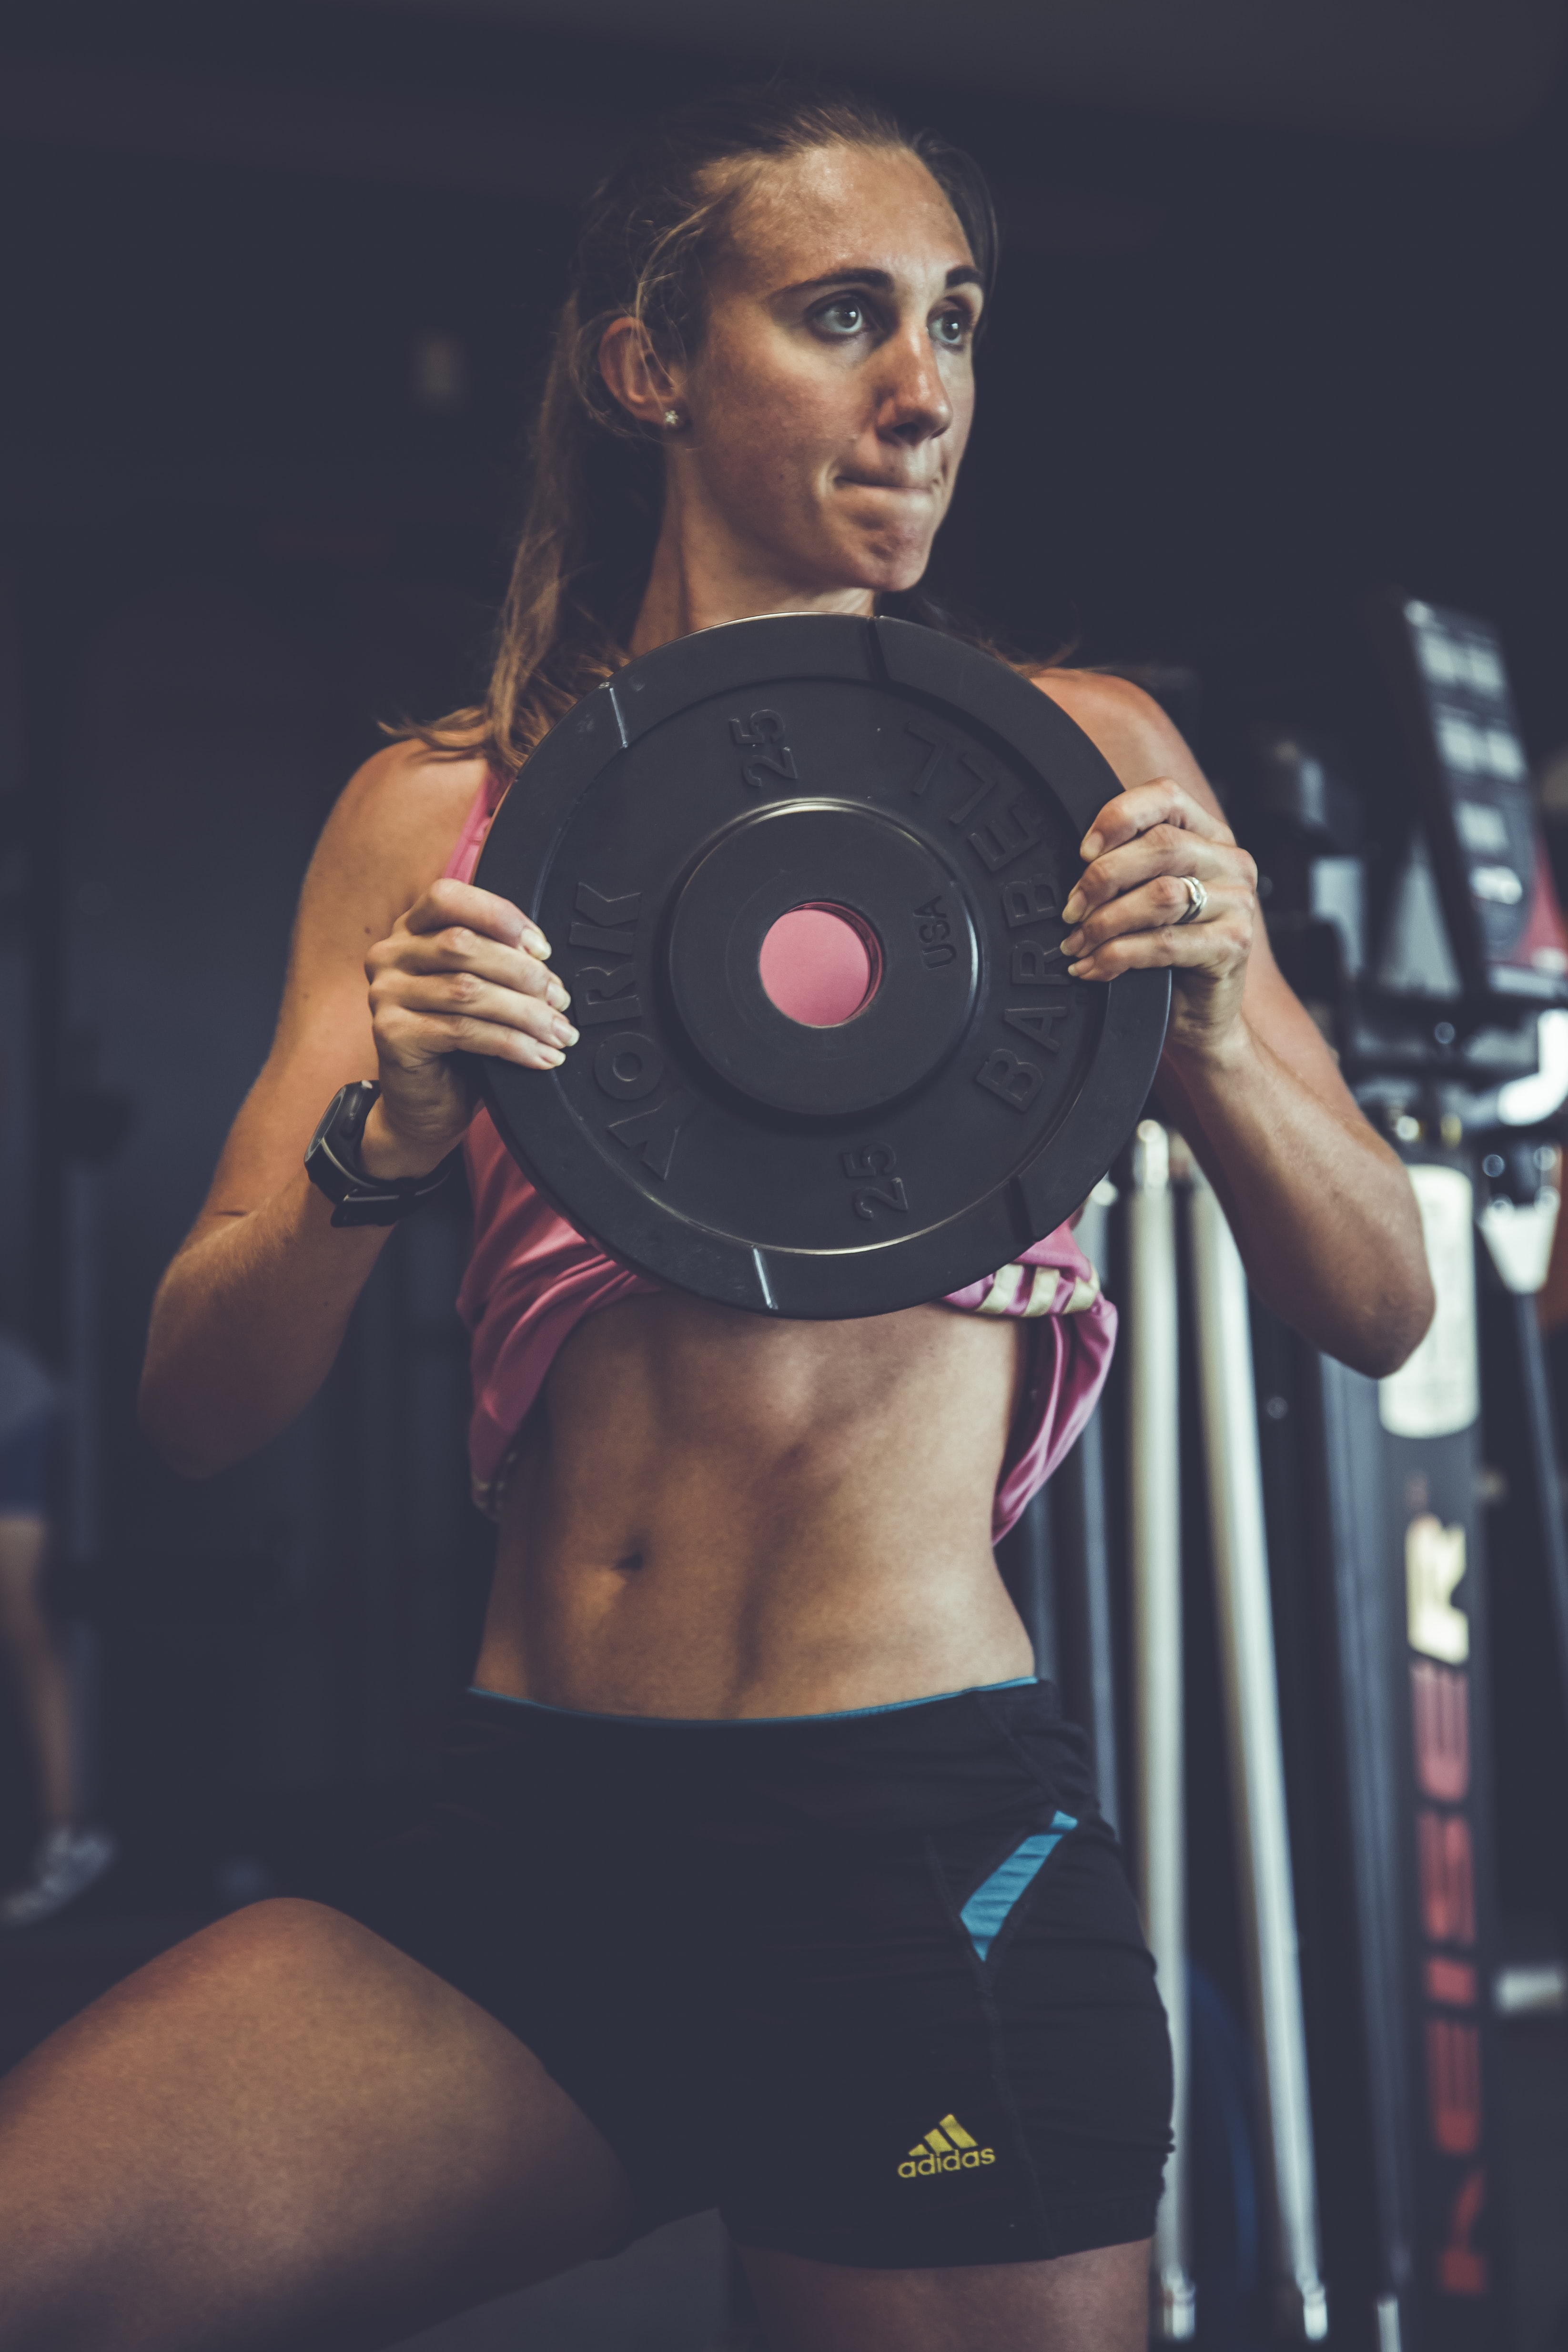 woman holding weight plate doing exercise